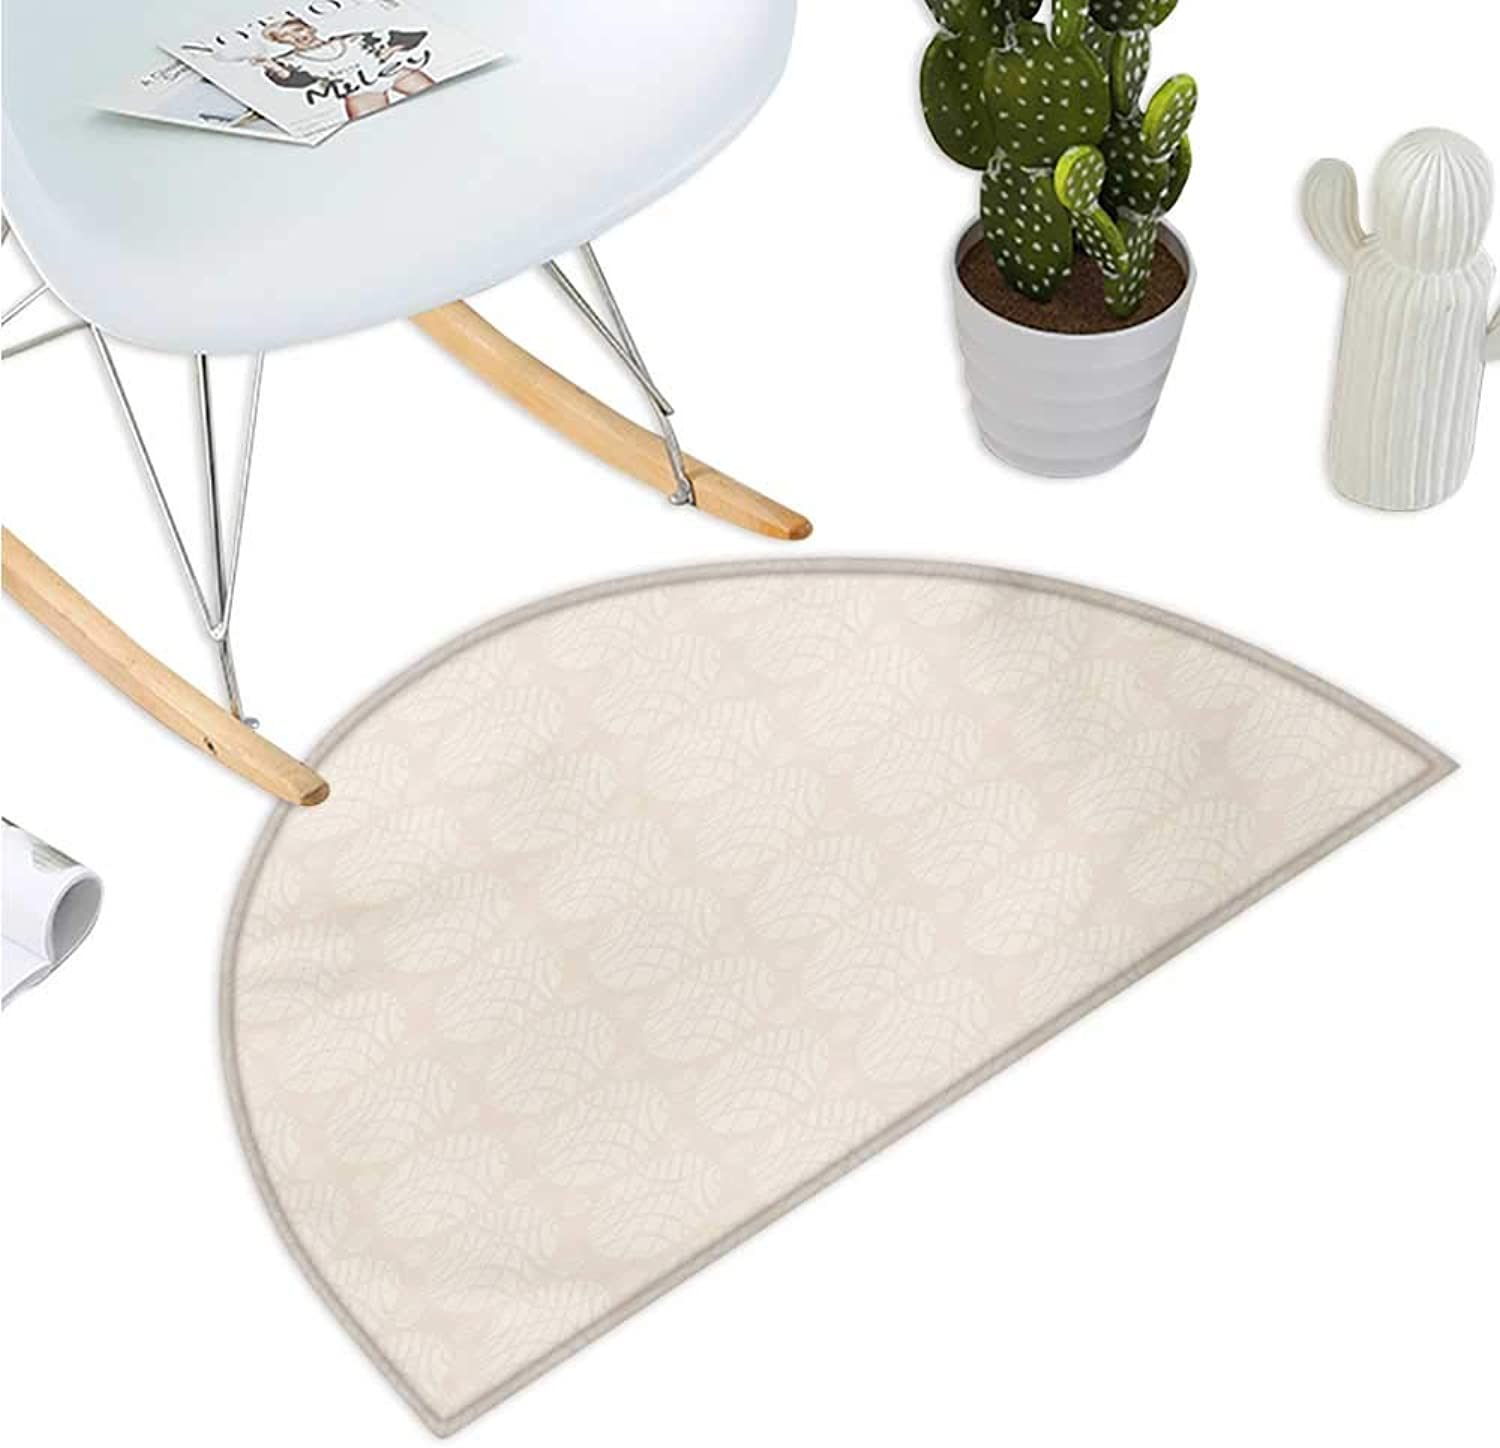 Ivory Half Round Door mats Abstract Soft Pastel colord Circular Round Shapes Pattern Simplistic and Artful Design Bathroom Mat H 35.4  xD 53.1  Cream